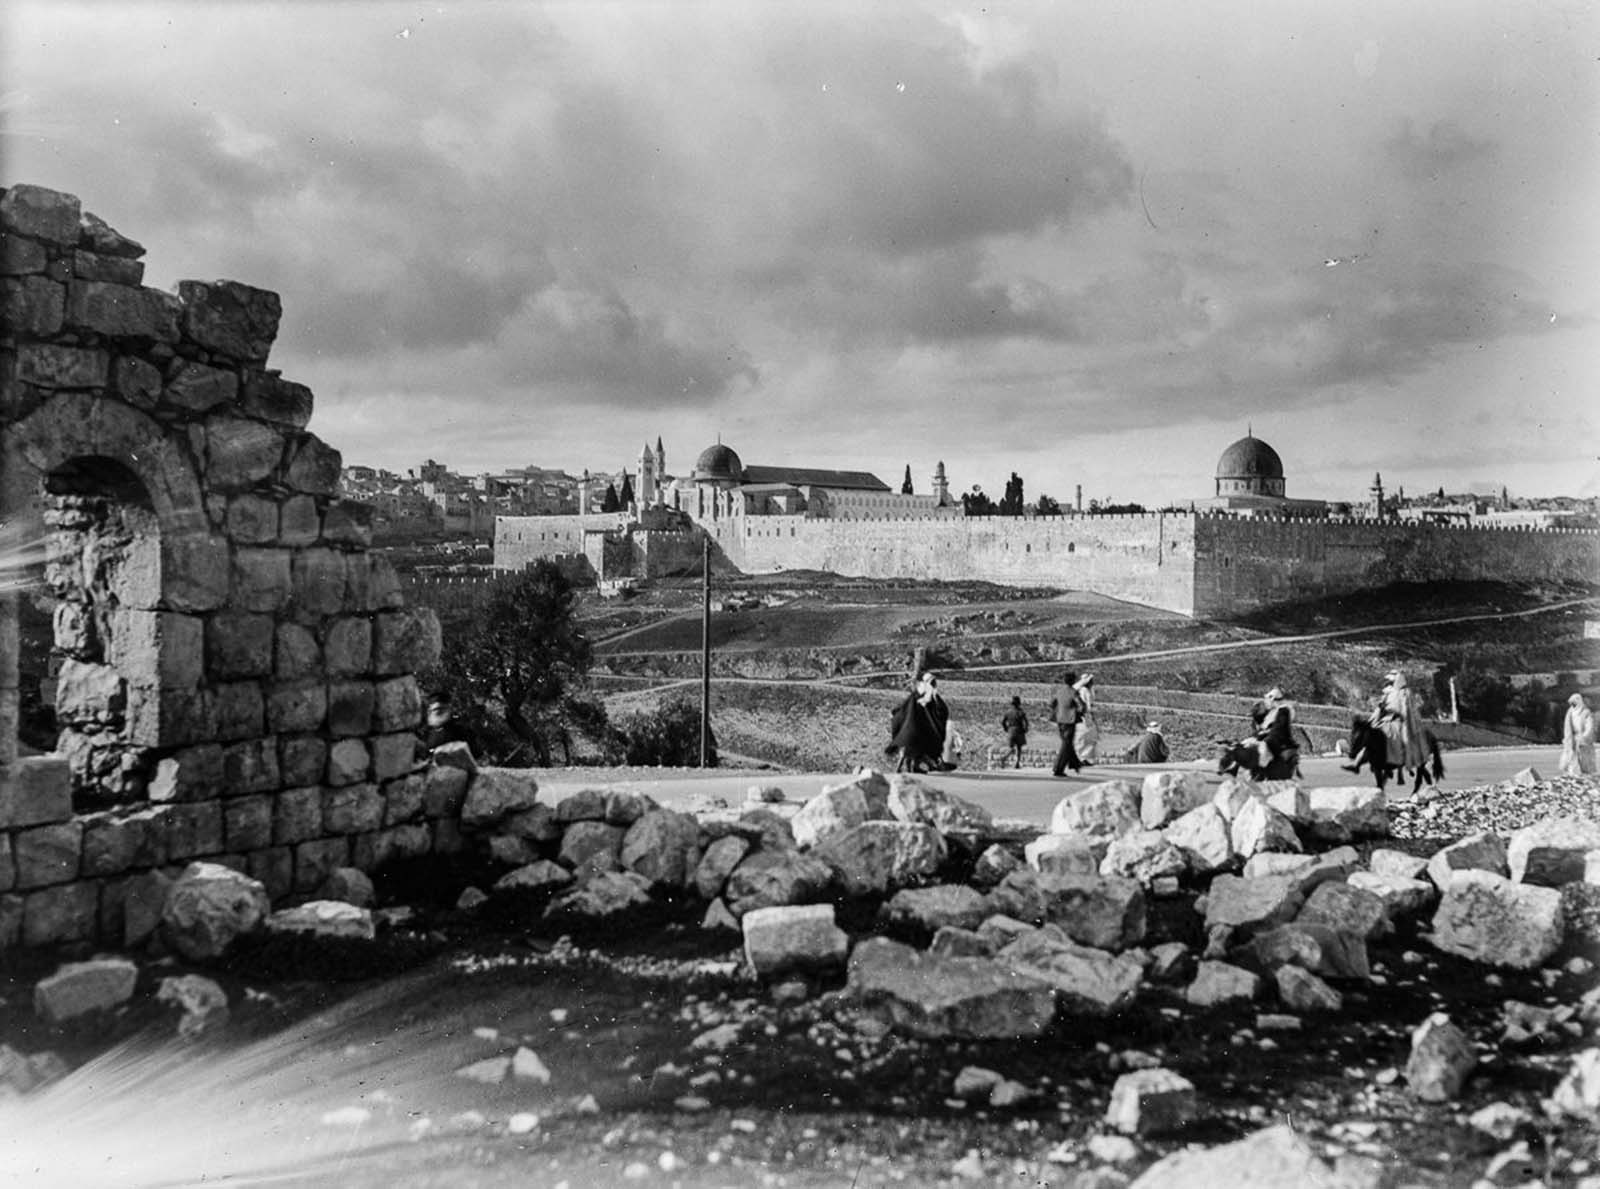 Another view from Jerusalem. 1900.